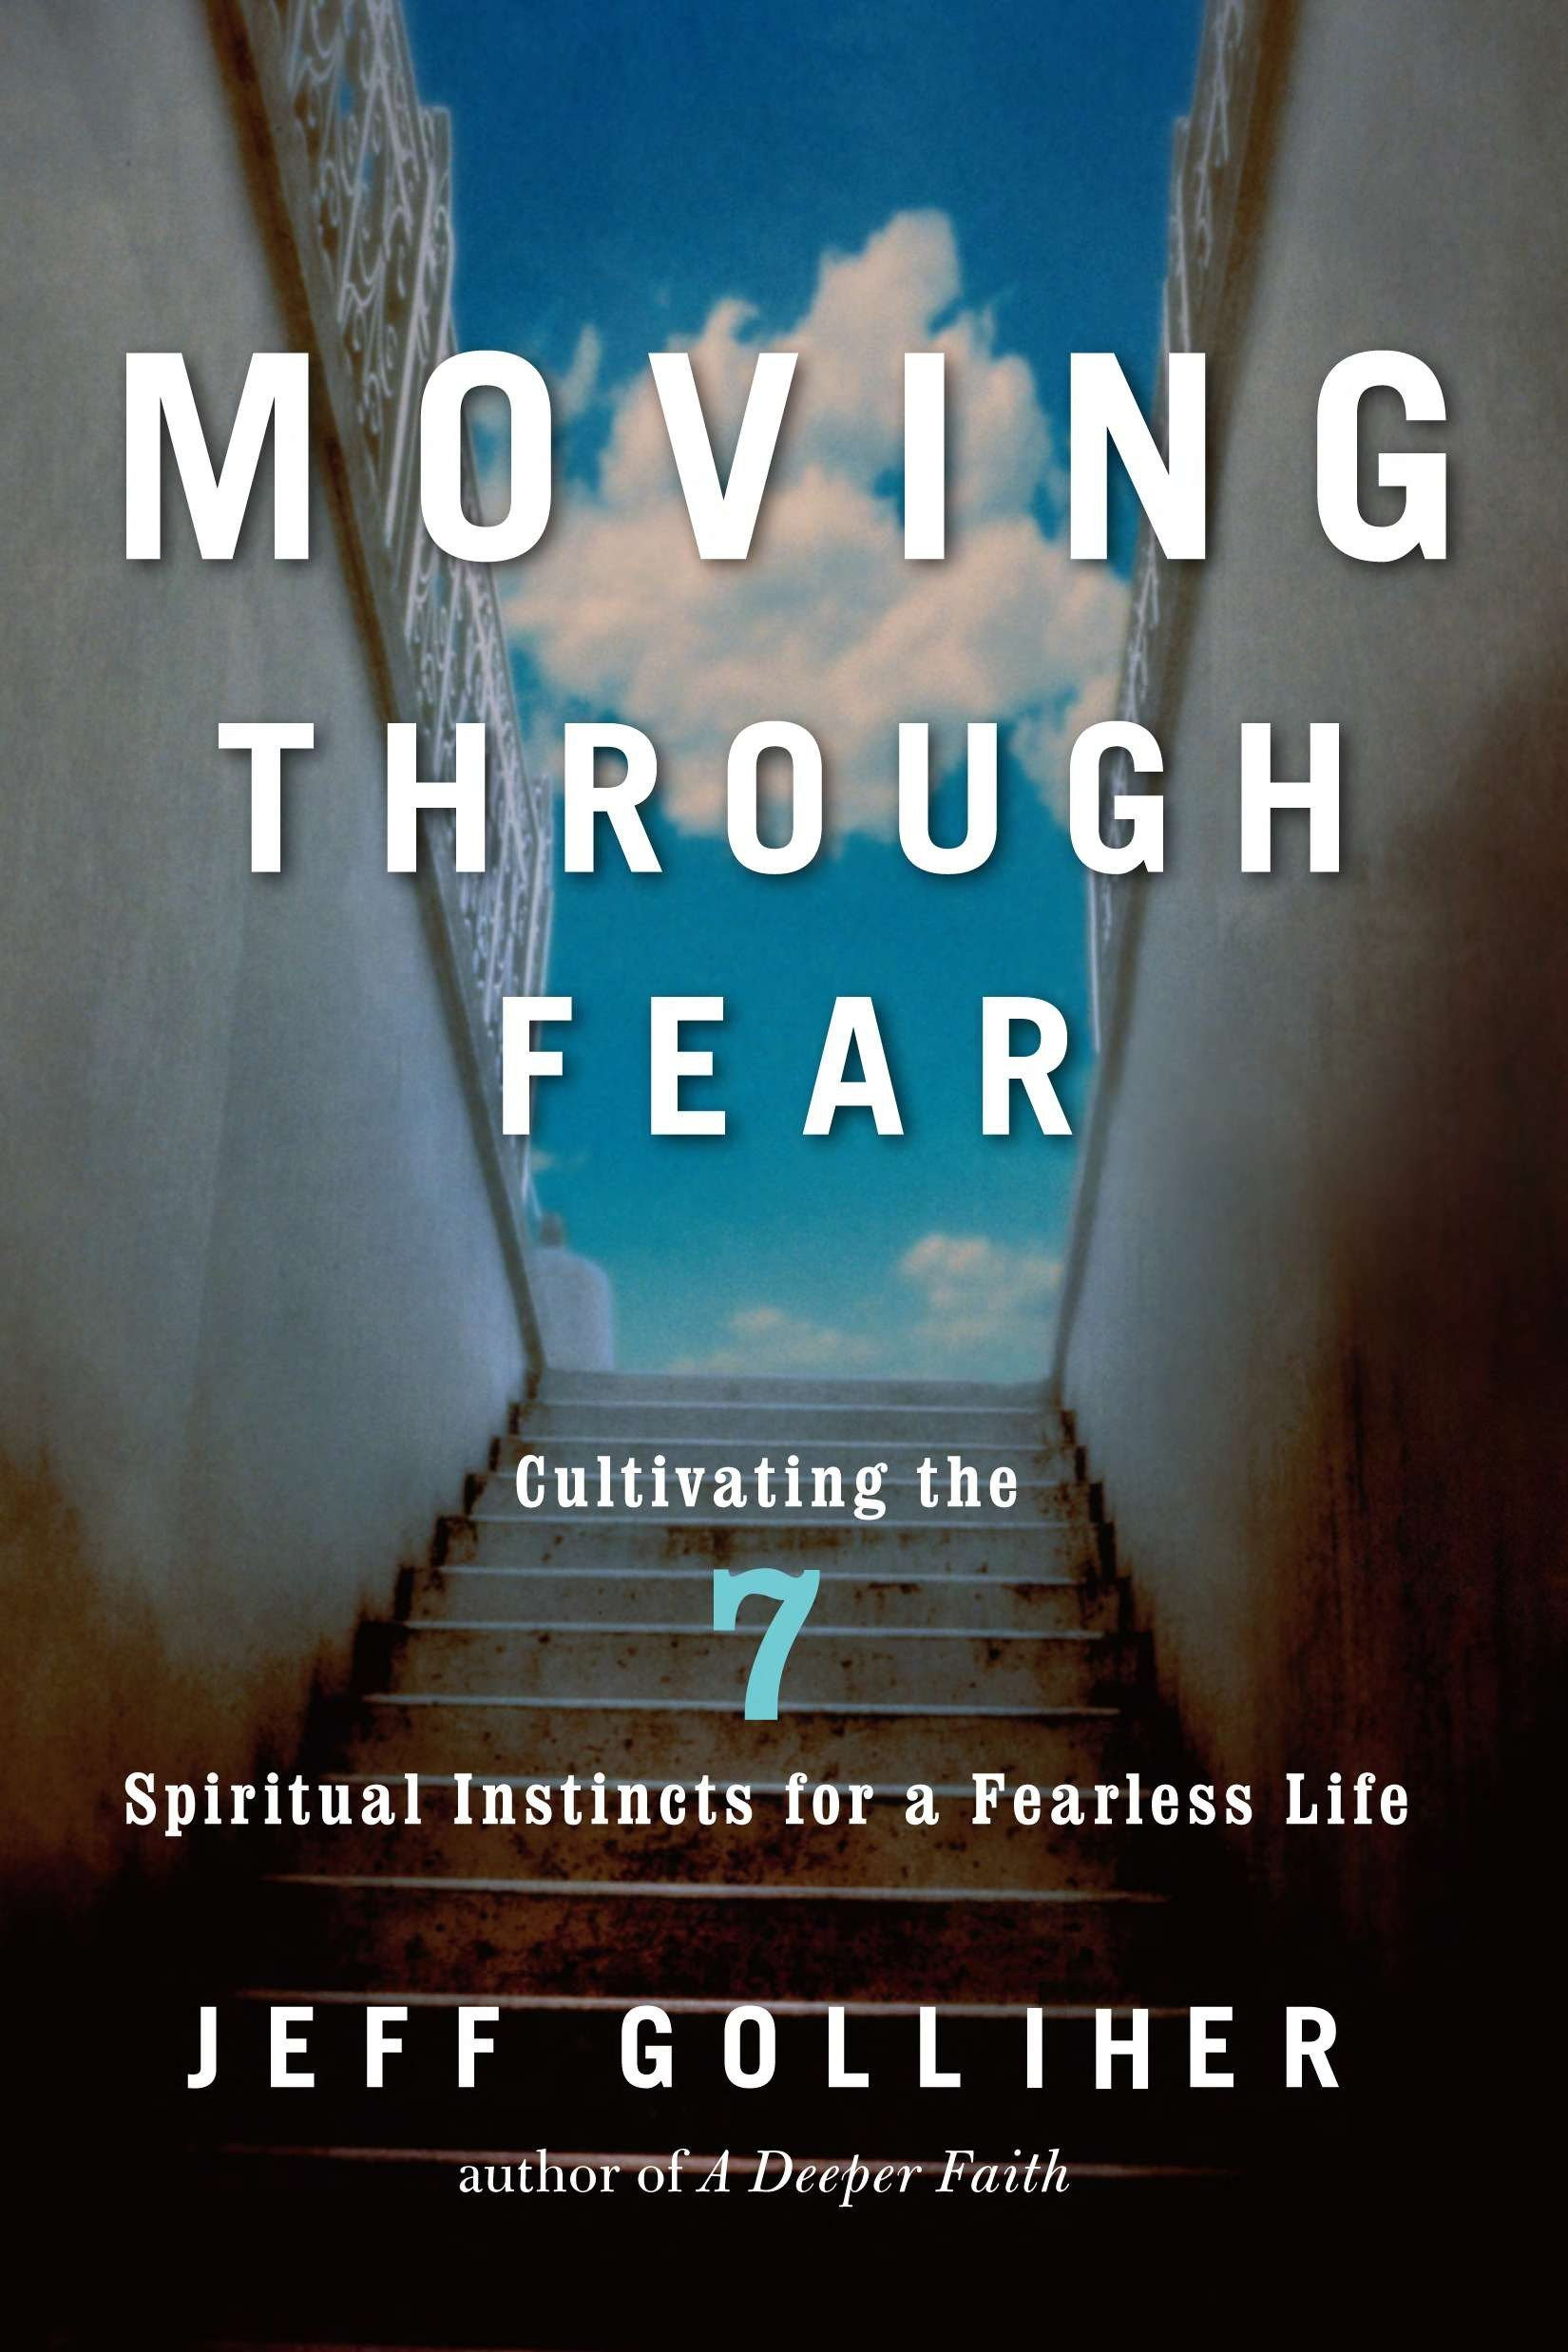 Download Moving Through Fear: Cultivating the 7 Spiritual Instincts for a Fearless Life PDF